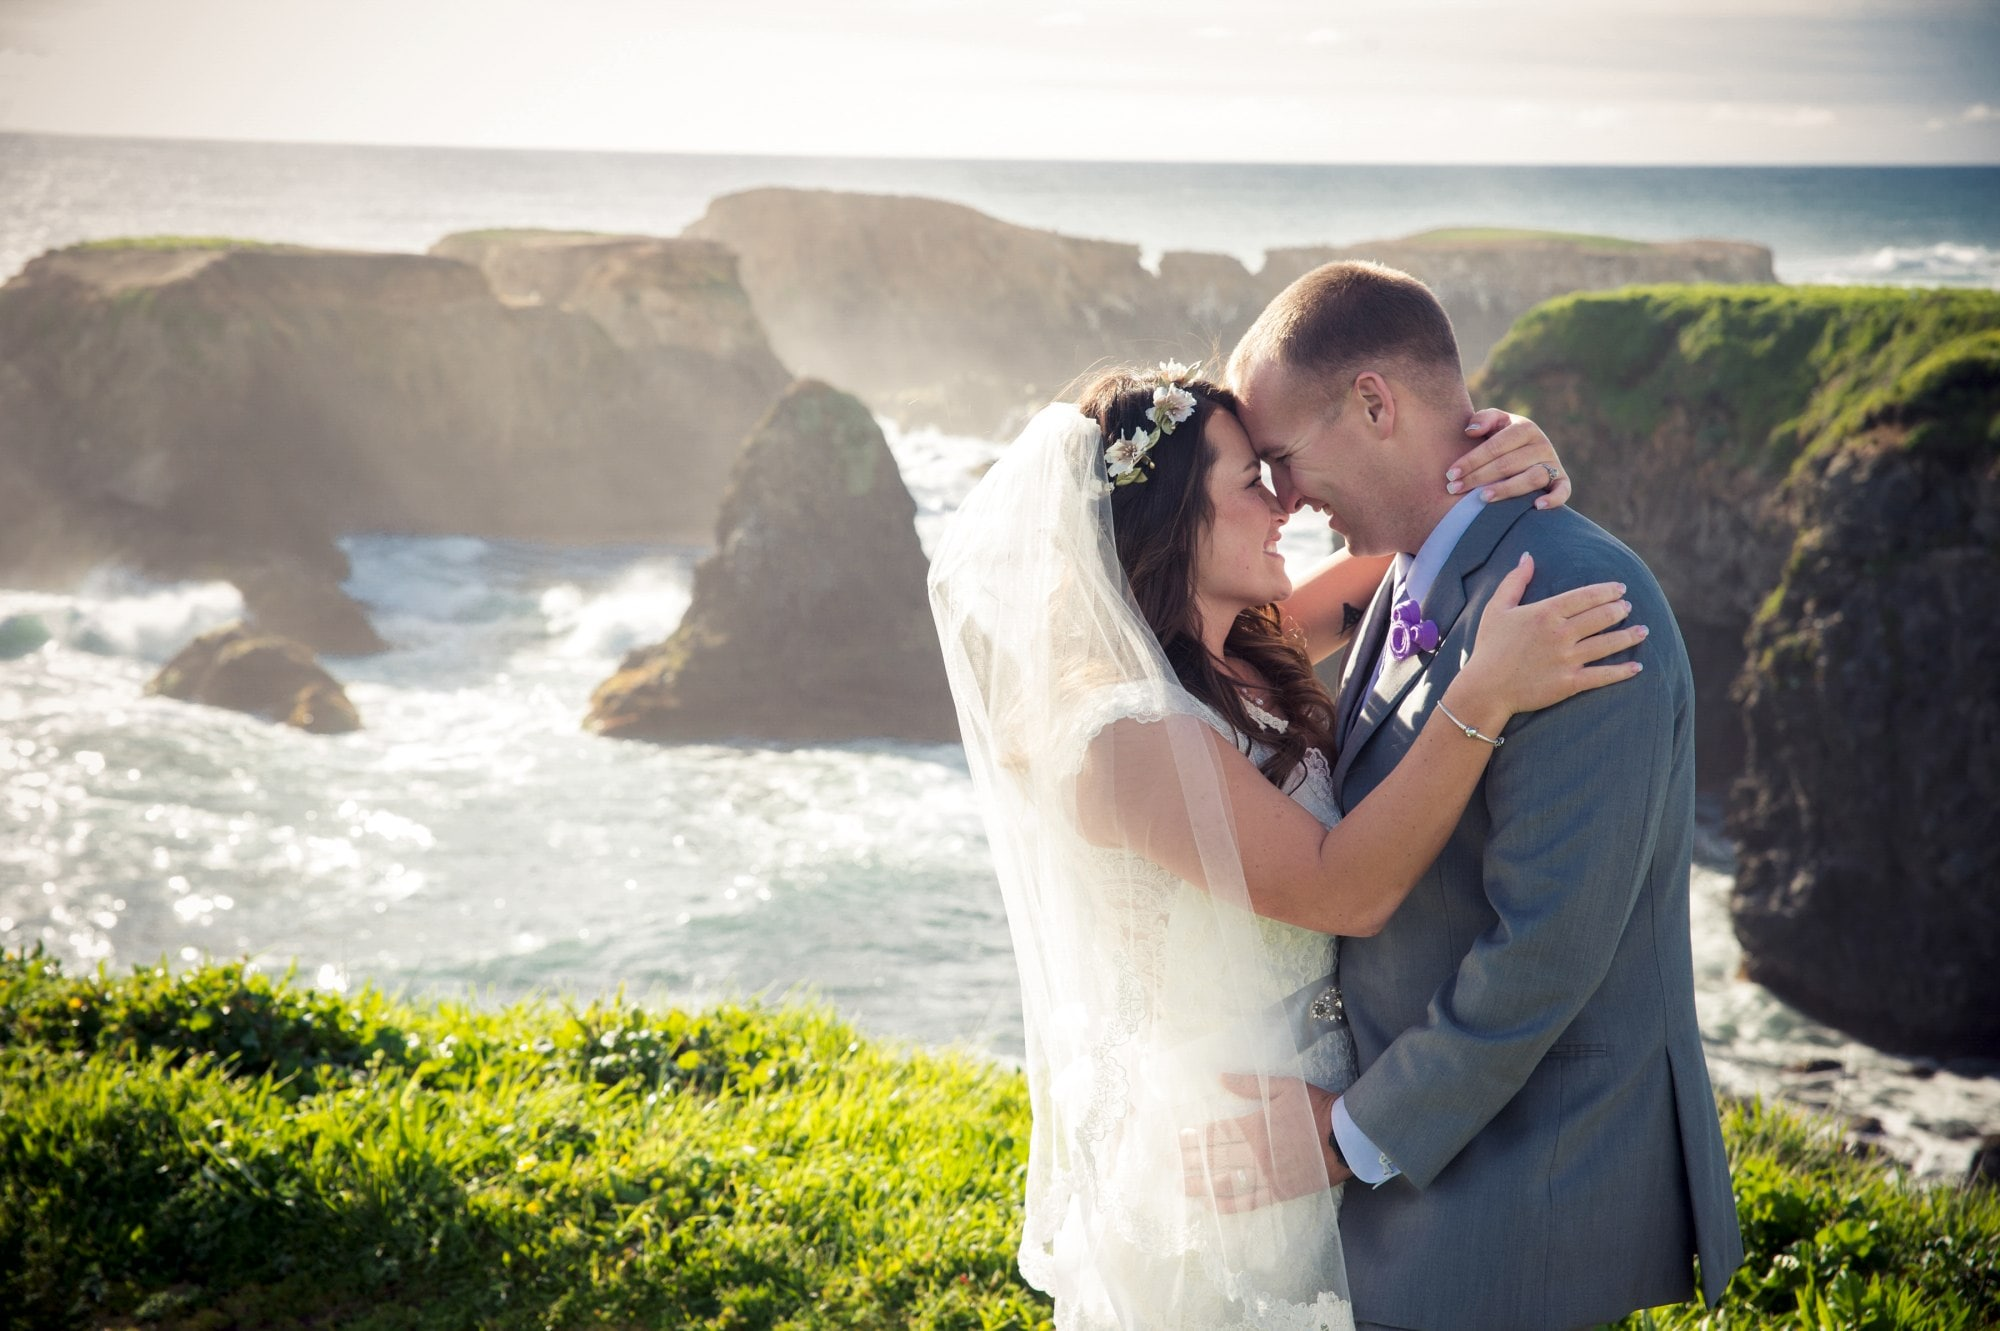 man in gray suit kissing woman in white wedding dress near body of water during daytime